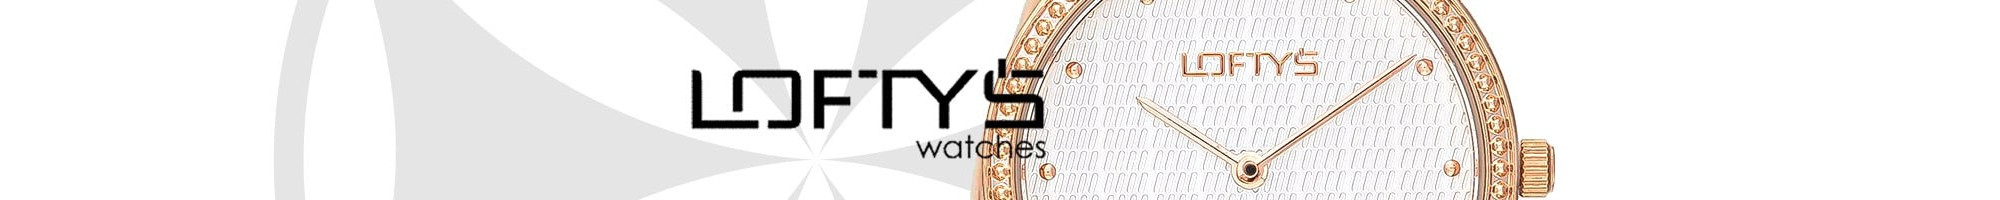 LOFTYS Women's Watches | New collection online at BIJOU BOX